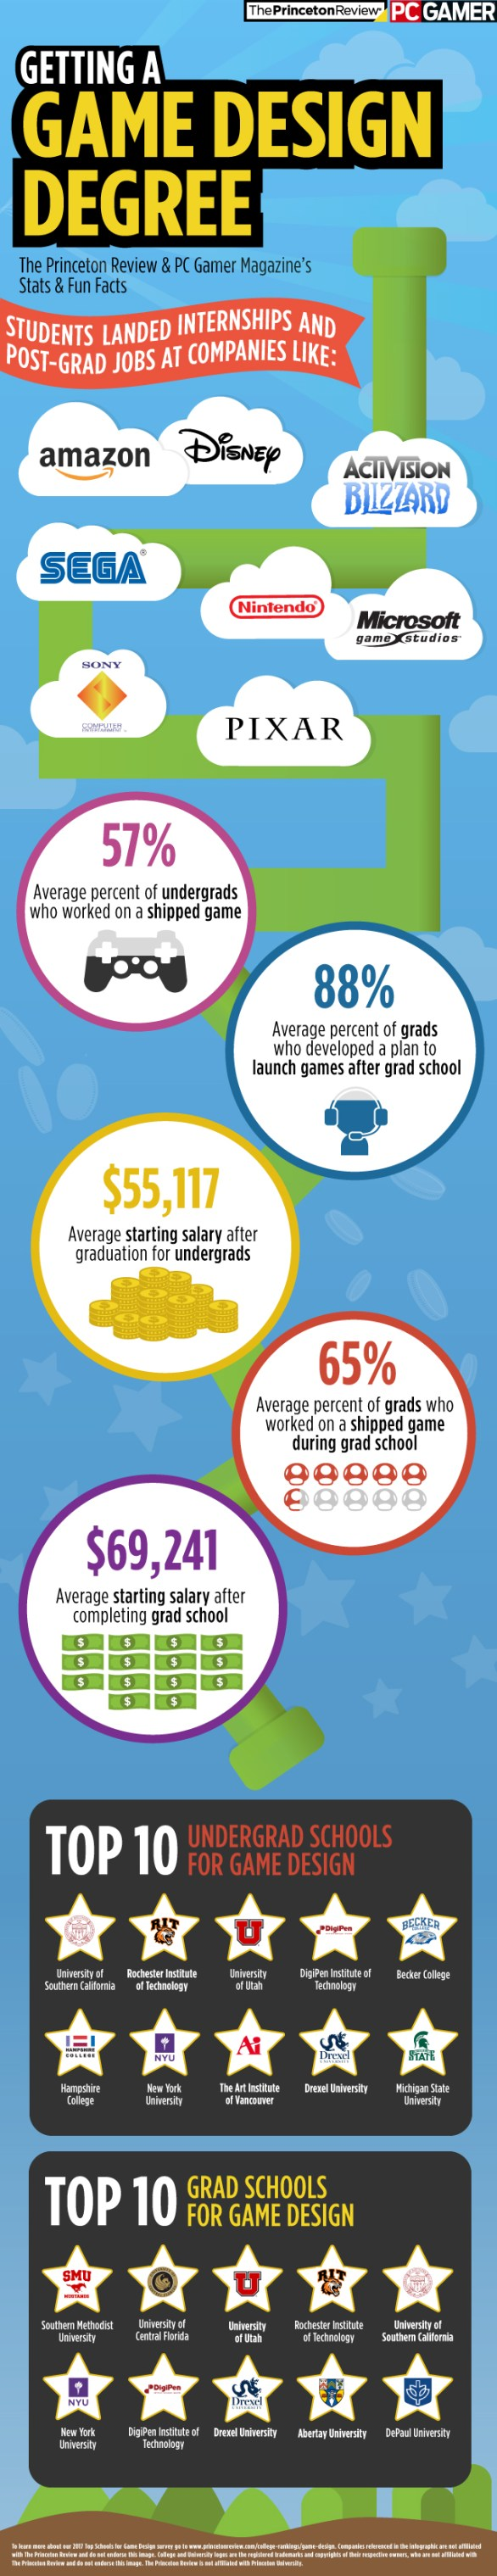 2017 Top Schools for Game Design Infographic